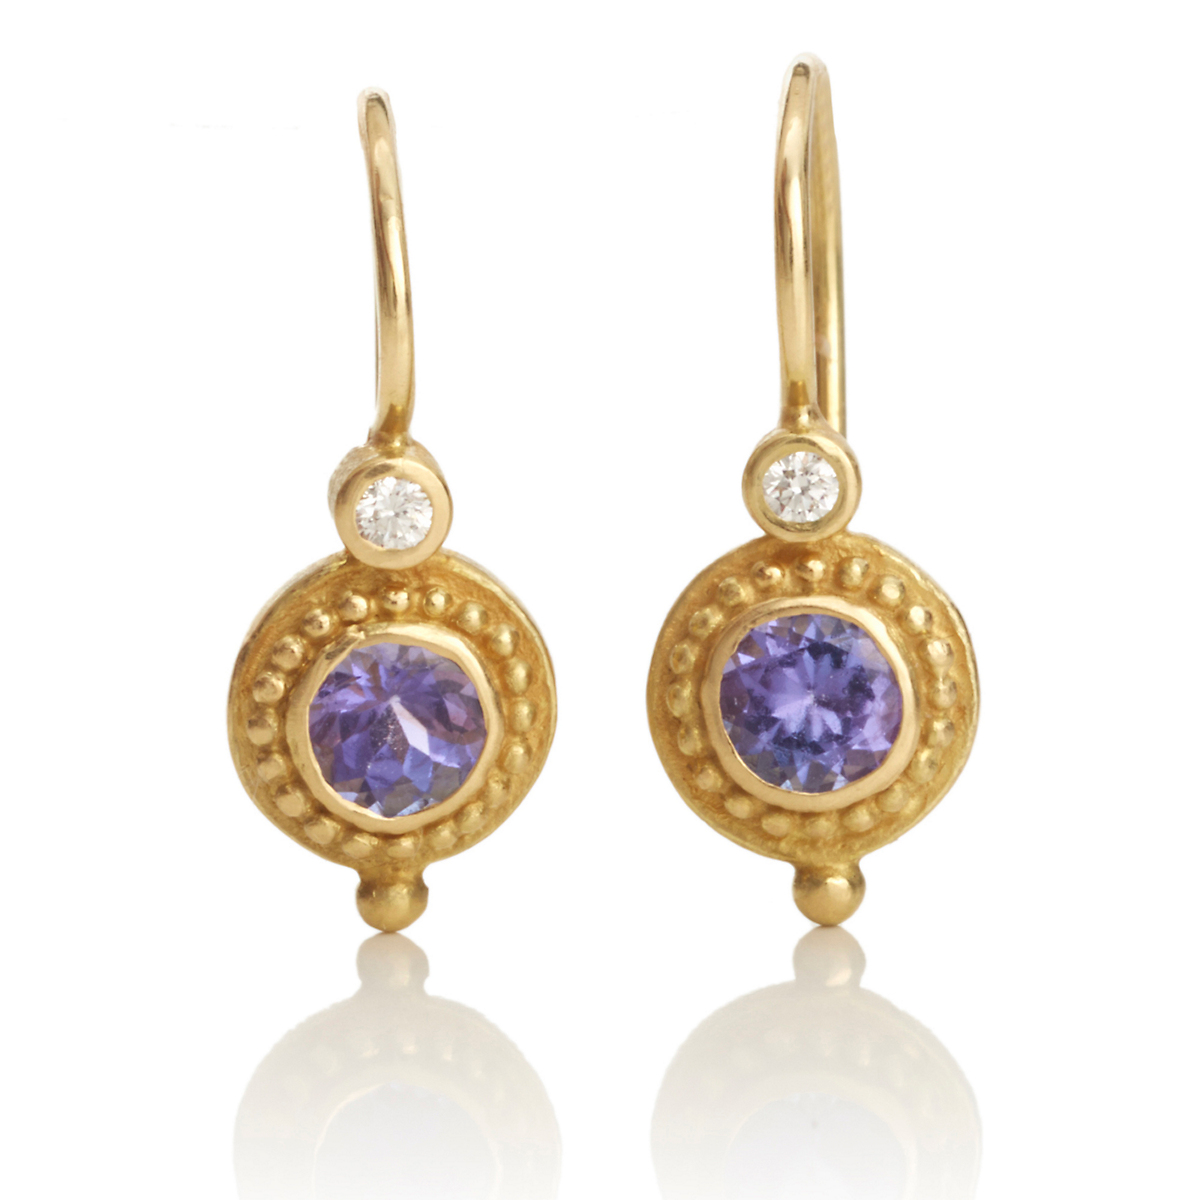 Barbara Heinrich Petite Tanzanite & Diamond Circle Earrings